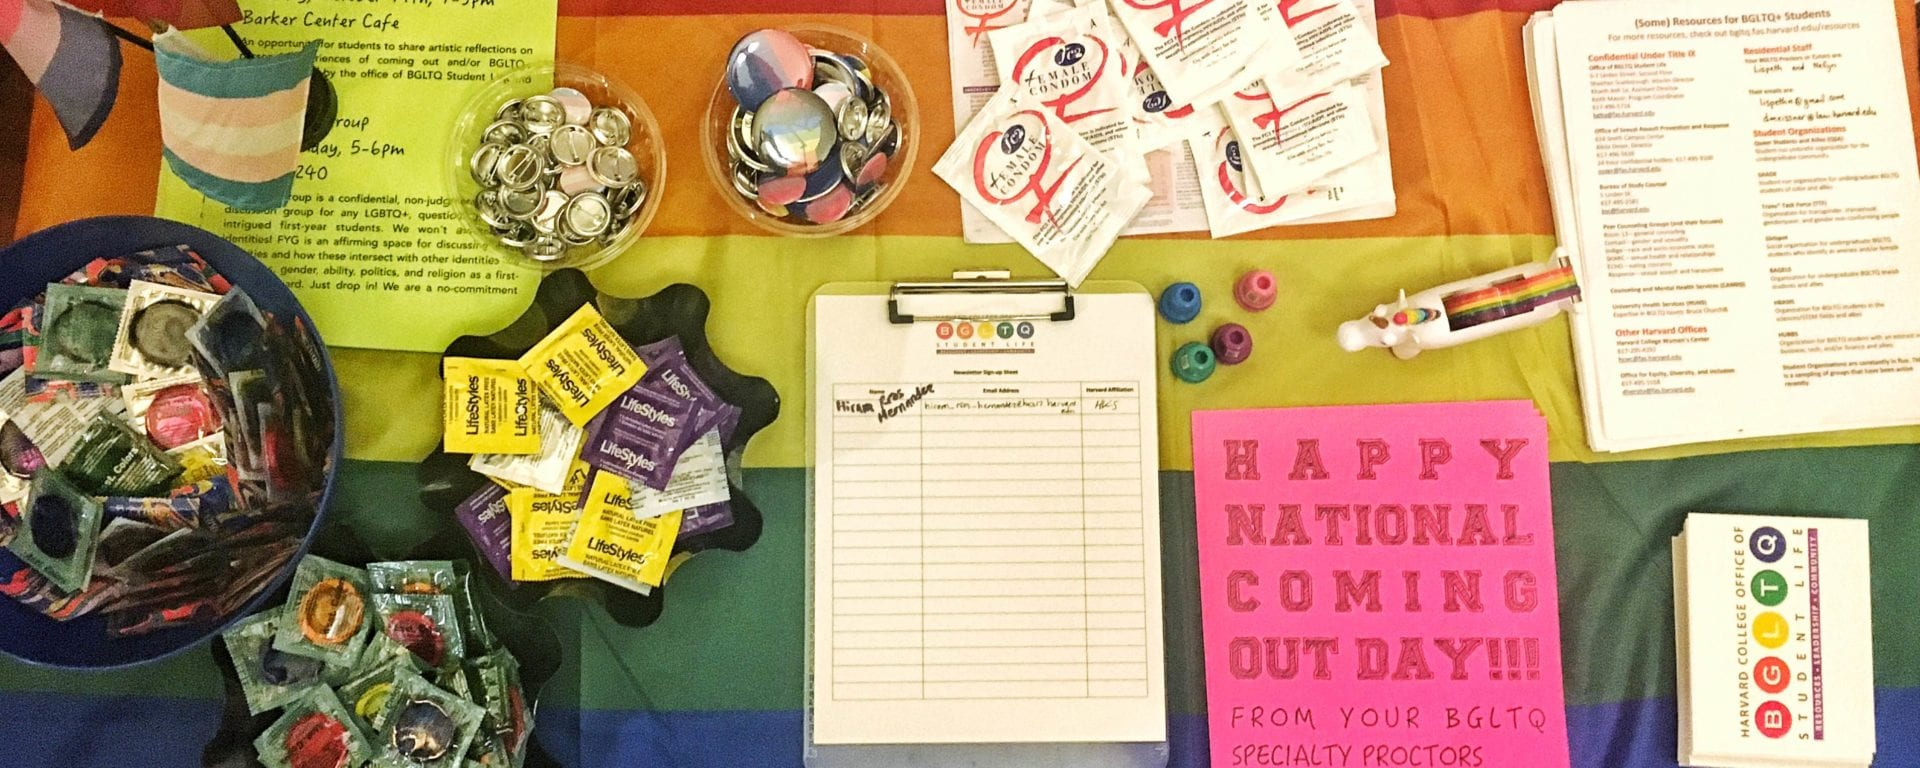 A spread at the Office of BGLTQ Student Life-hosted National Coming Out Day open mic.